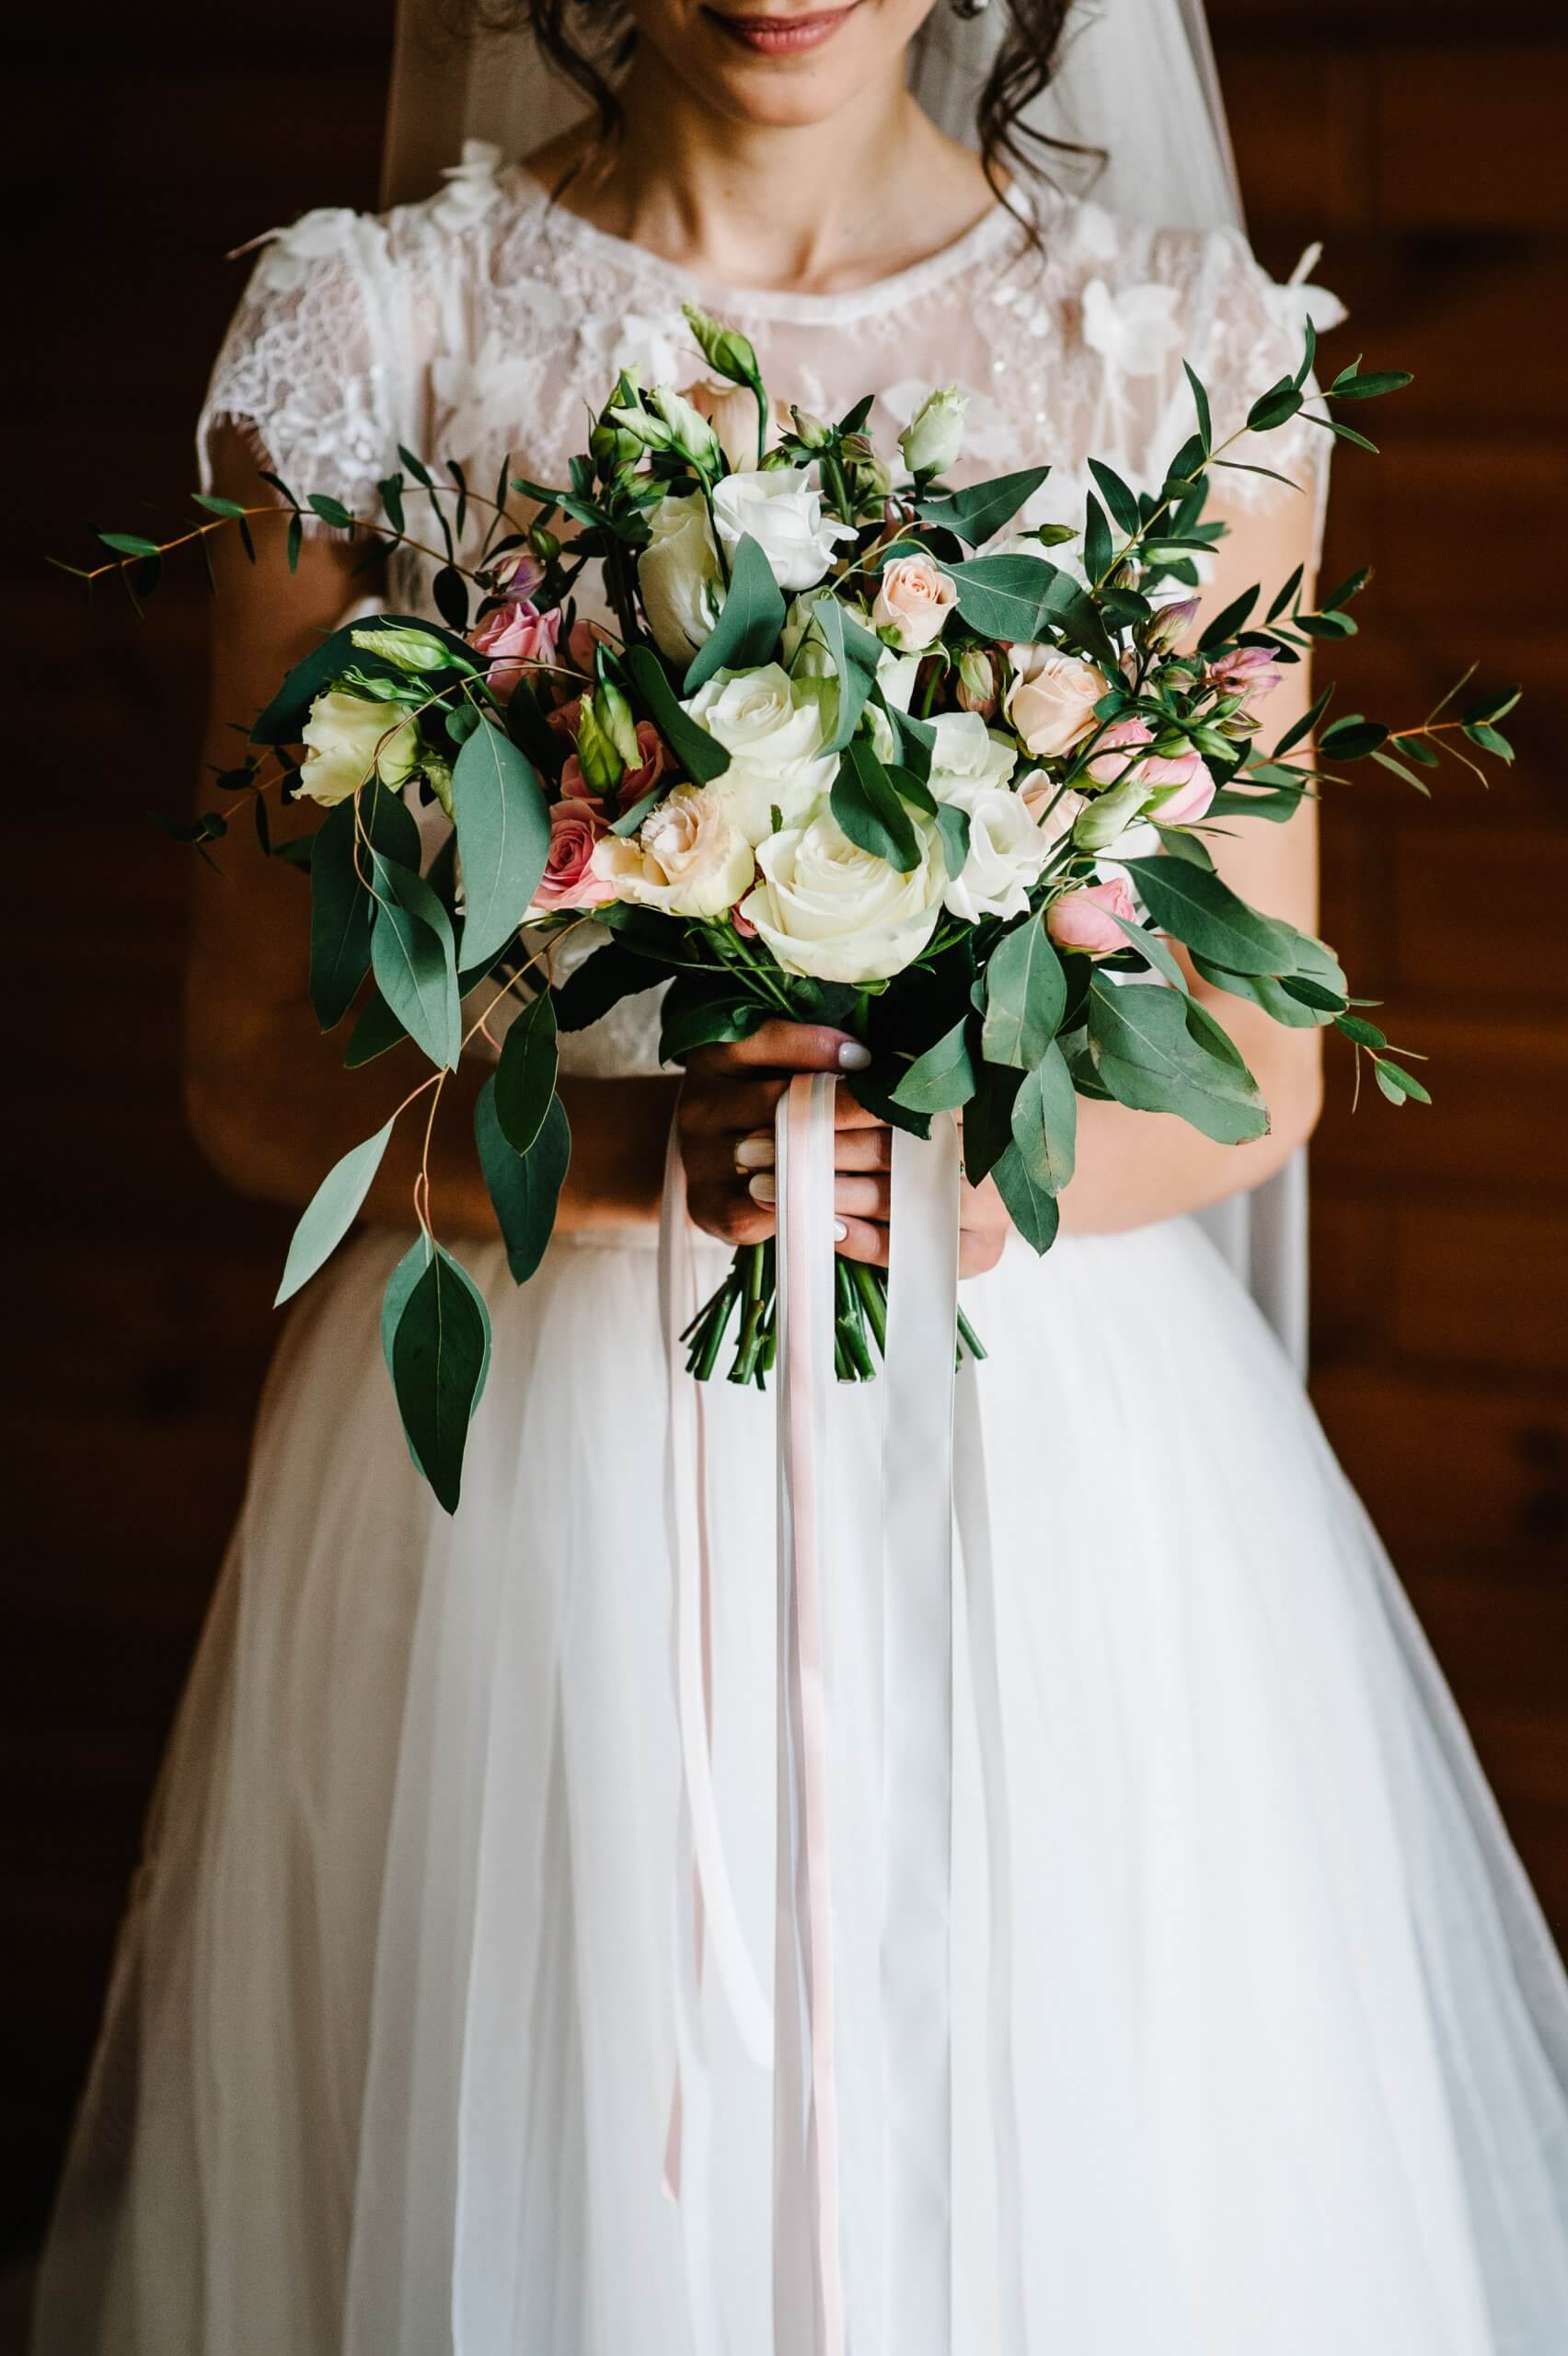 Bridal bouquet. Wedding. The girl in a white dress standing on a brown background and holds a beautiful bouquet of white, yellow, pink flowers and greenery, decorated with long silk ribbon.